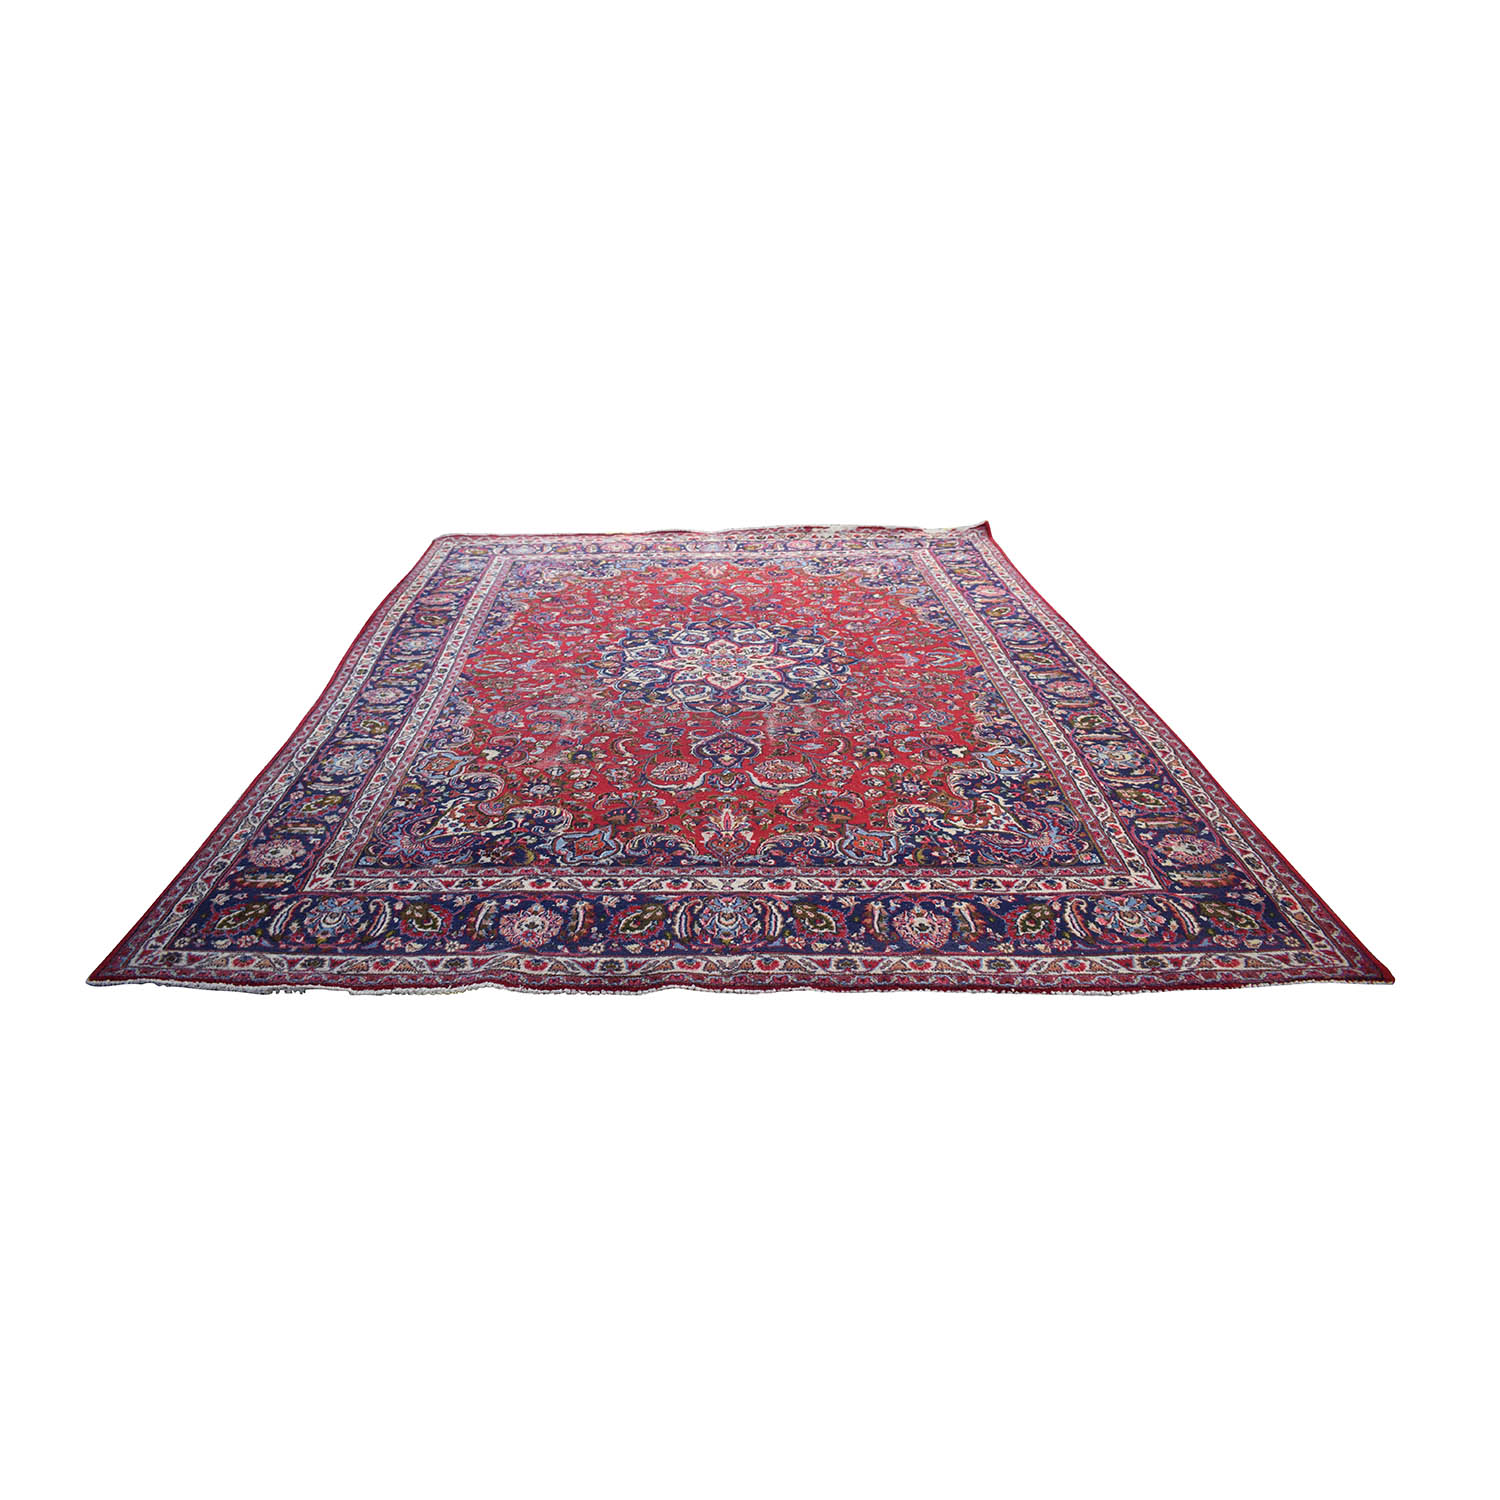 Persian Area Rug used